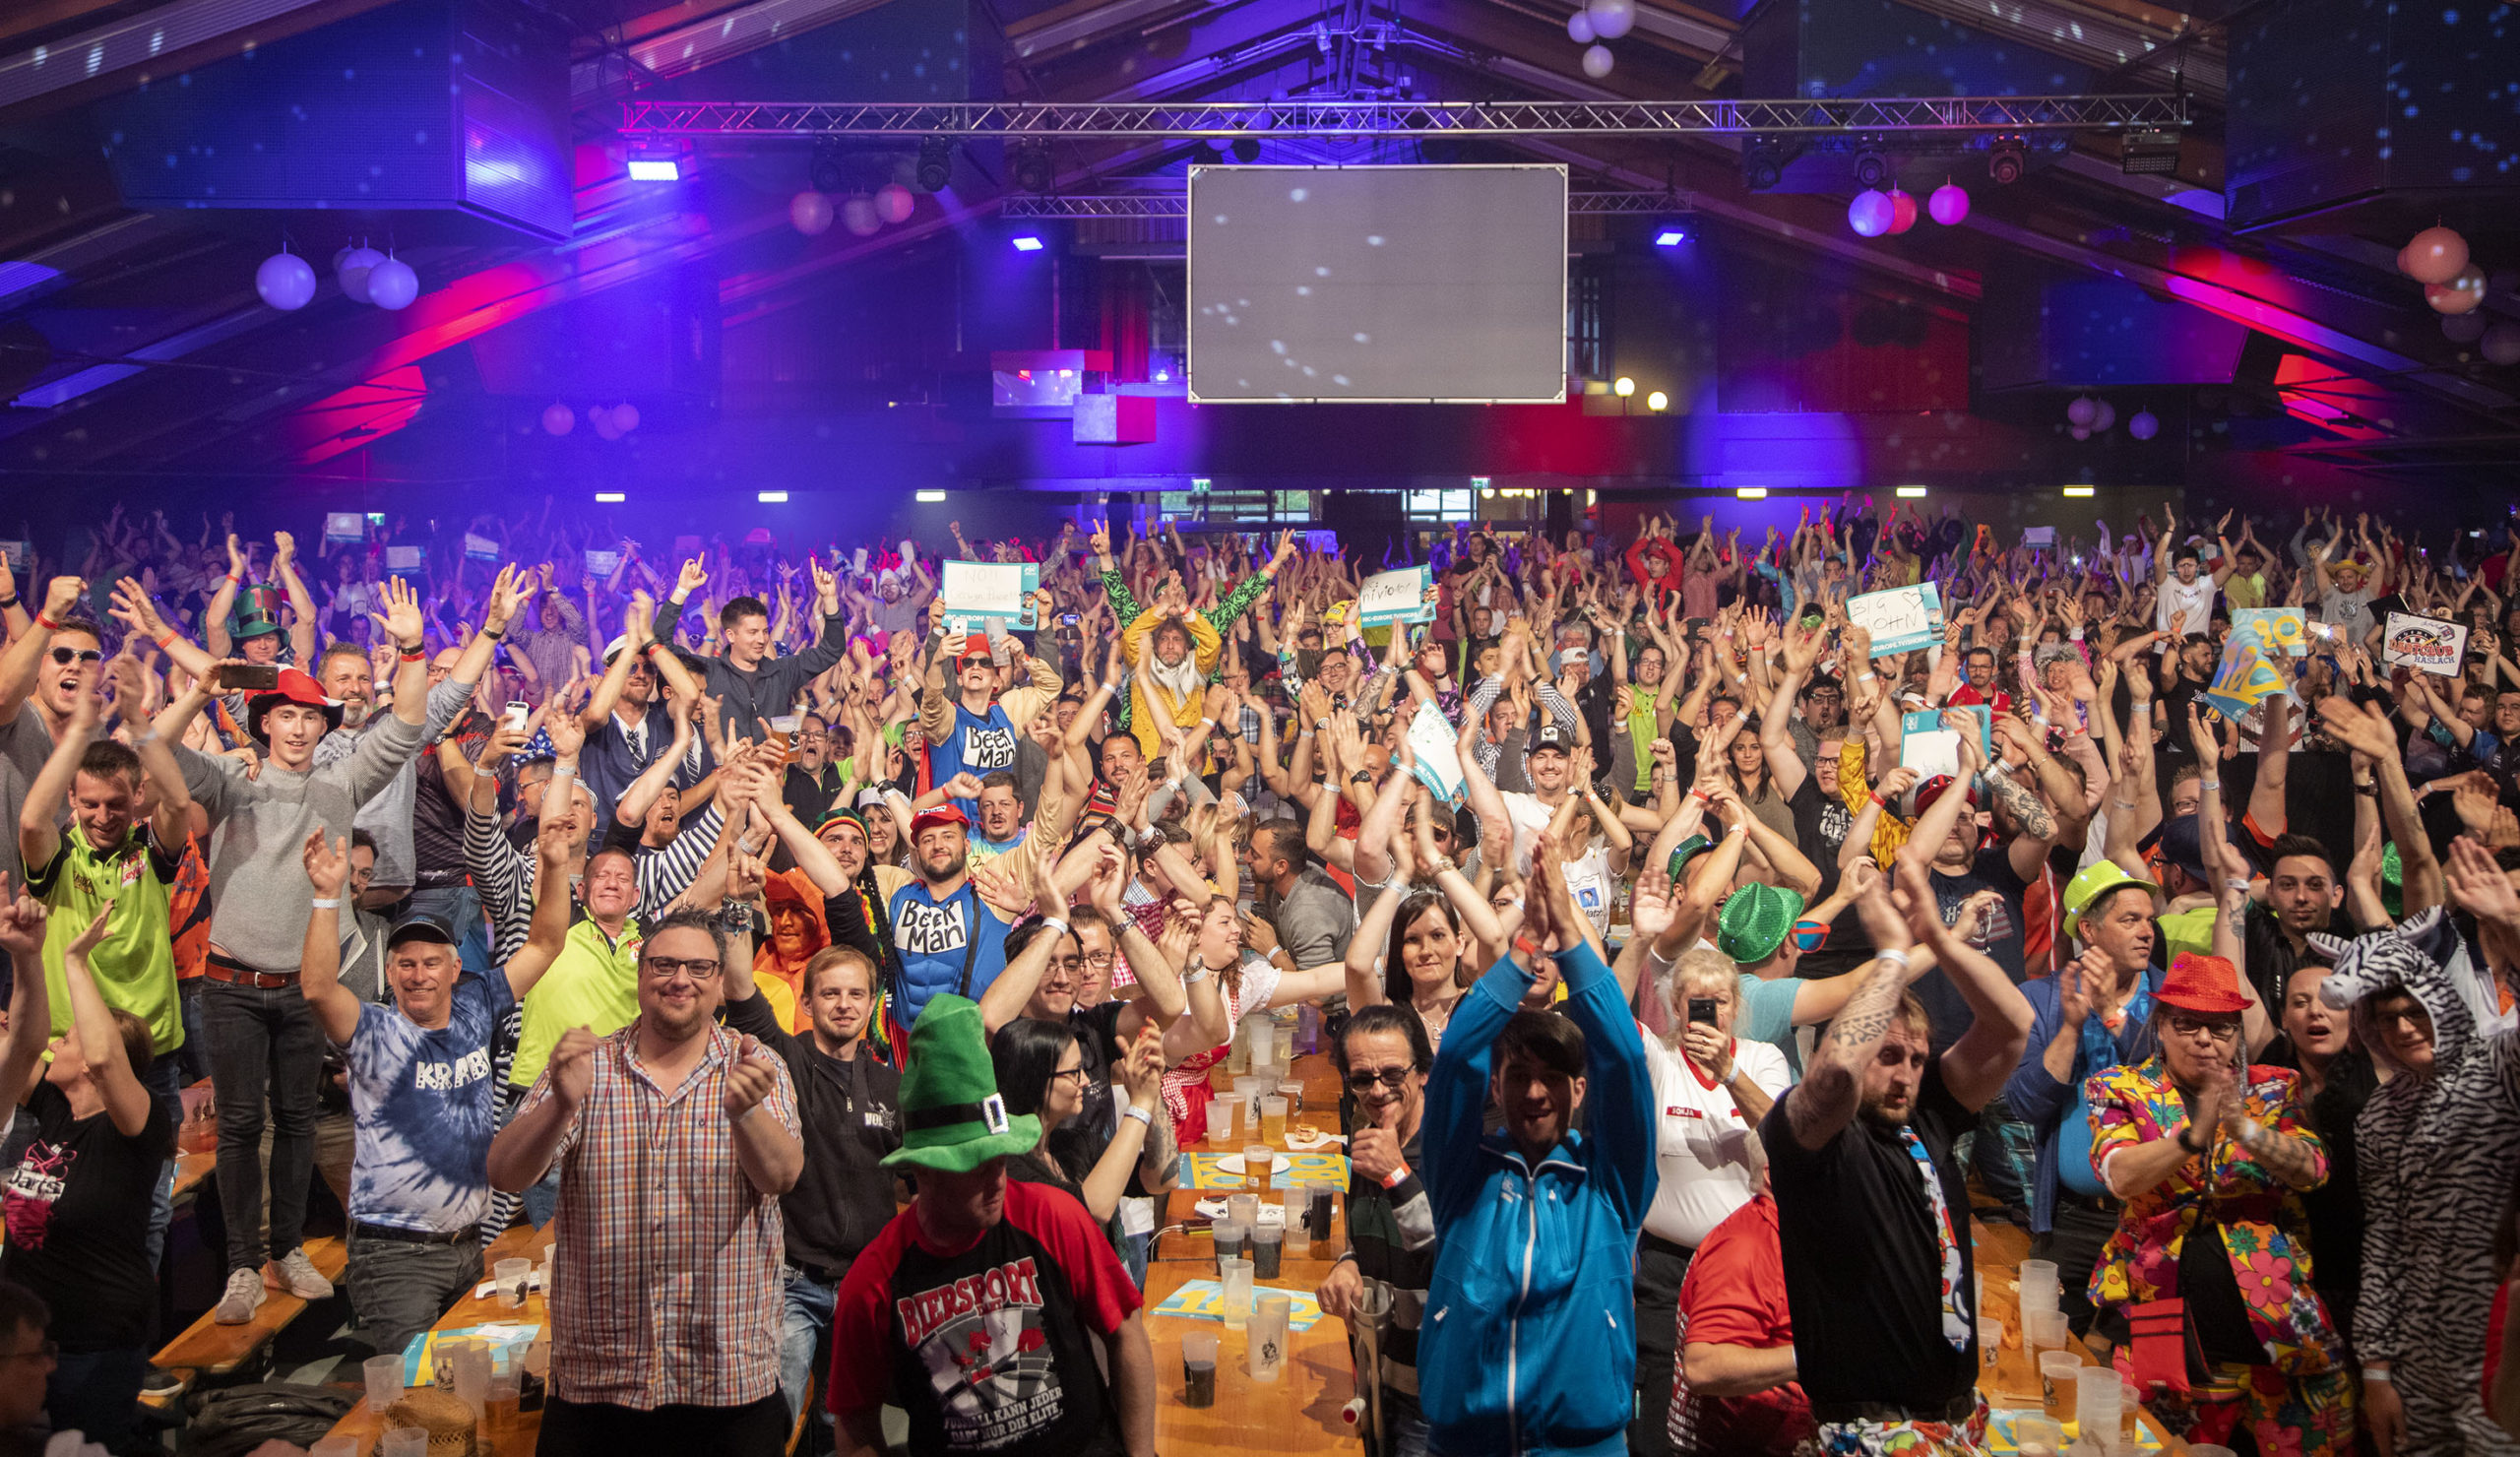 International Darts Open schedule and how to watch